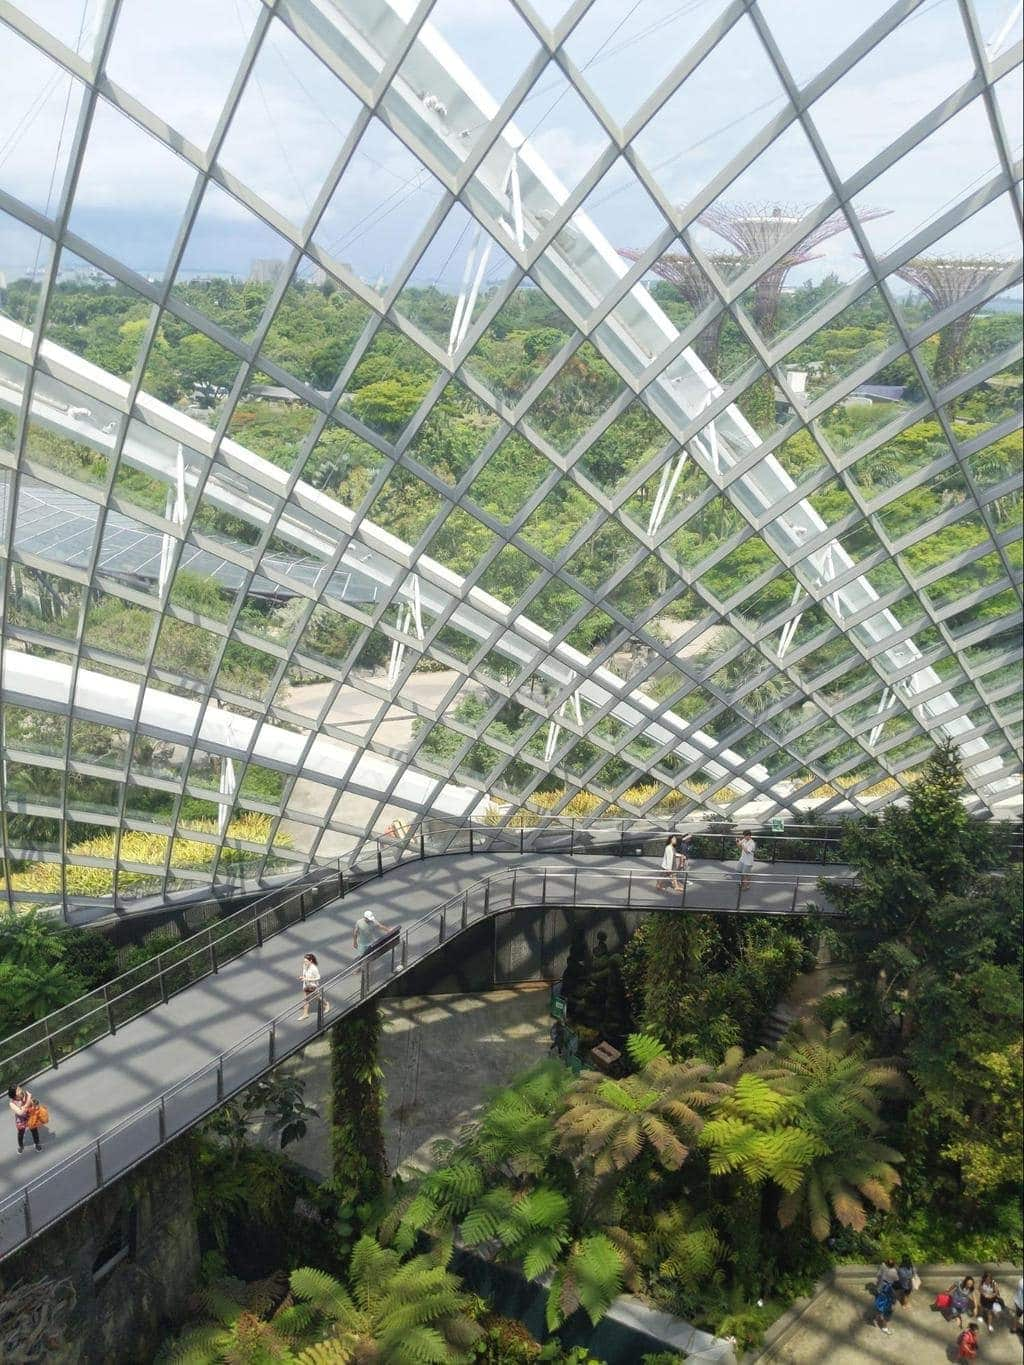 View from Cloud Forest waterfall at GBS